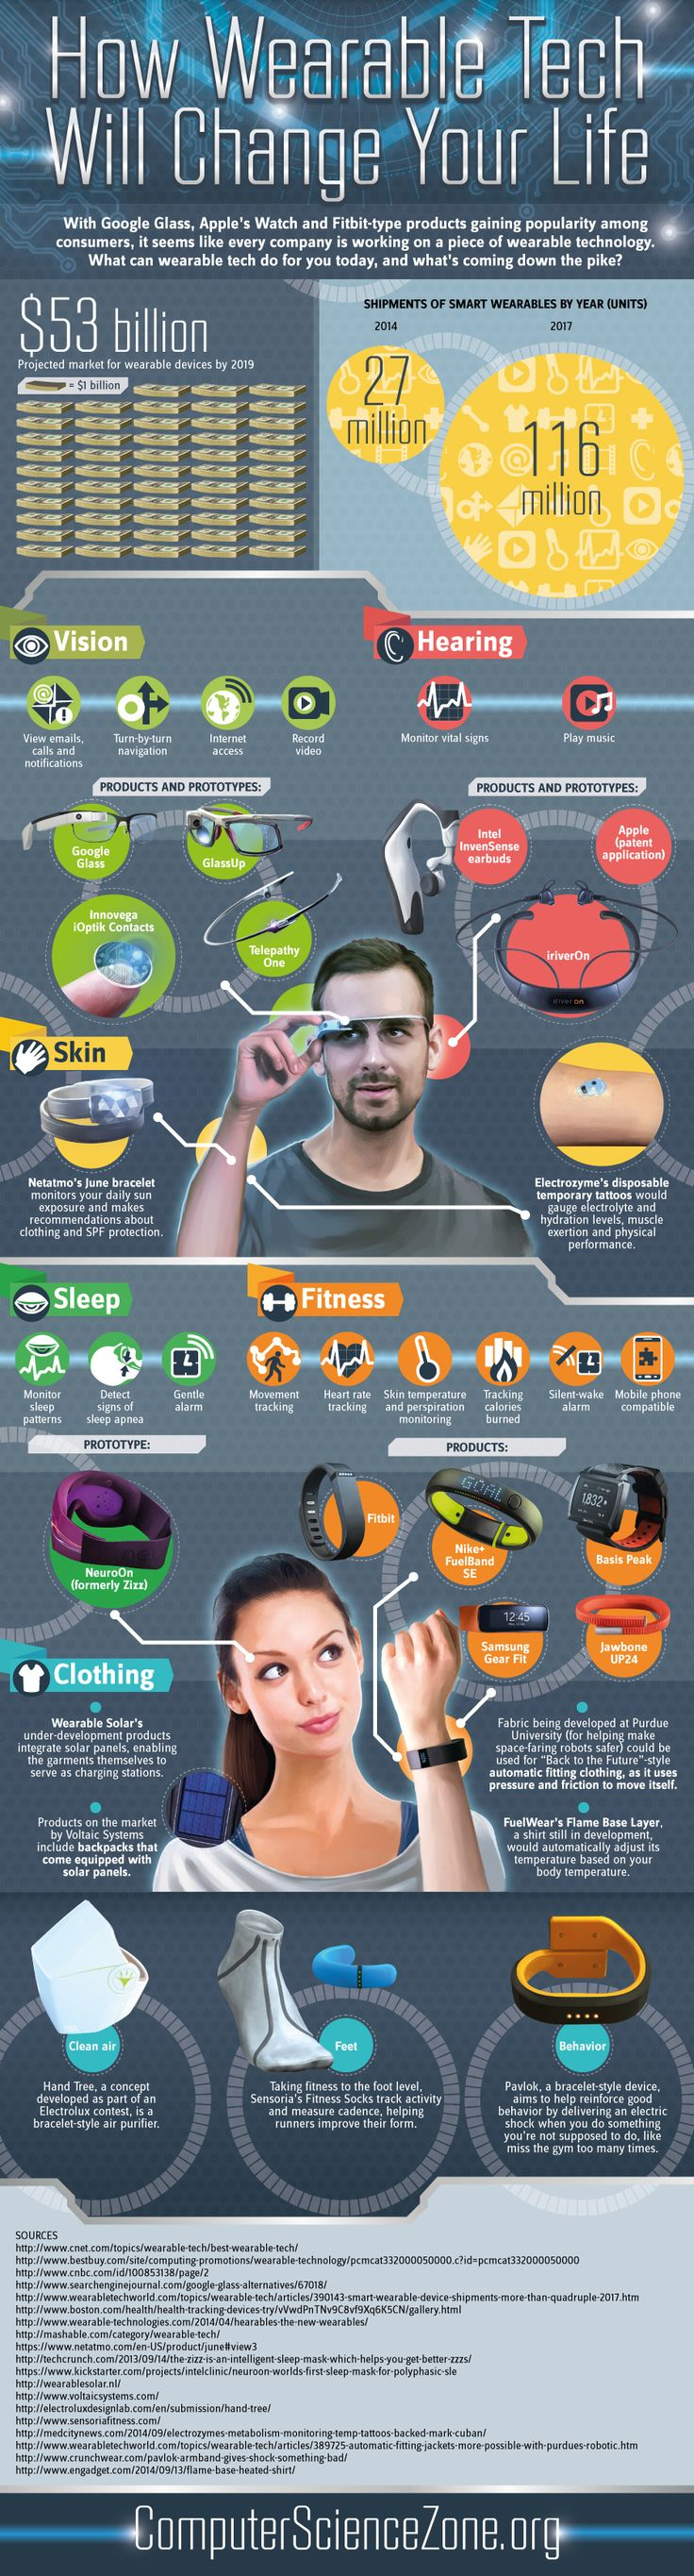 How Wearable Tech will change your life